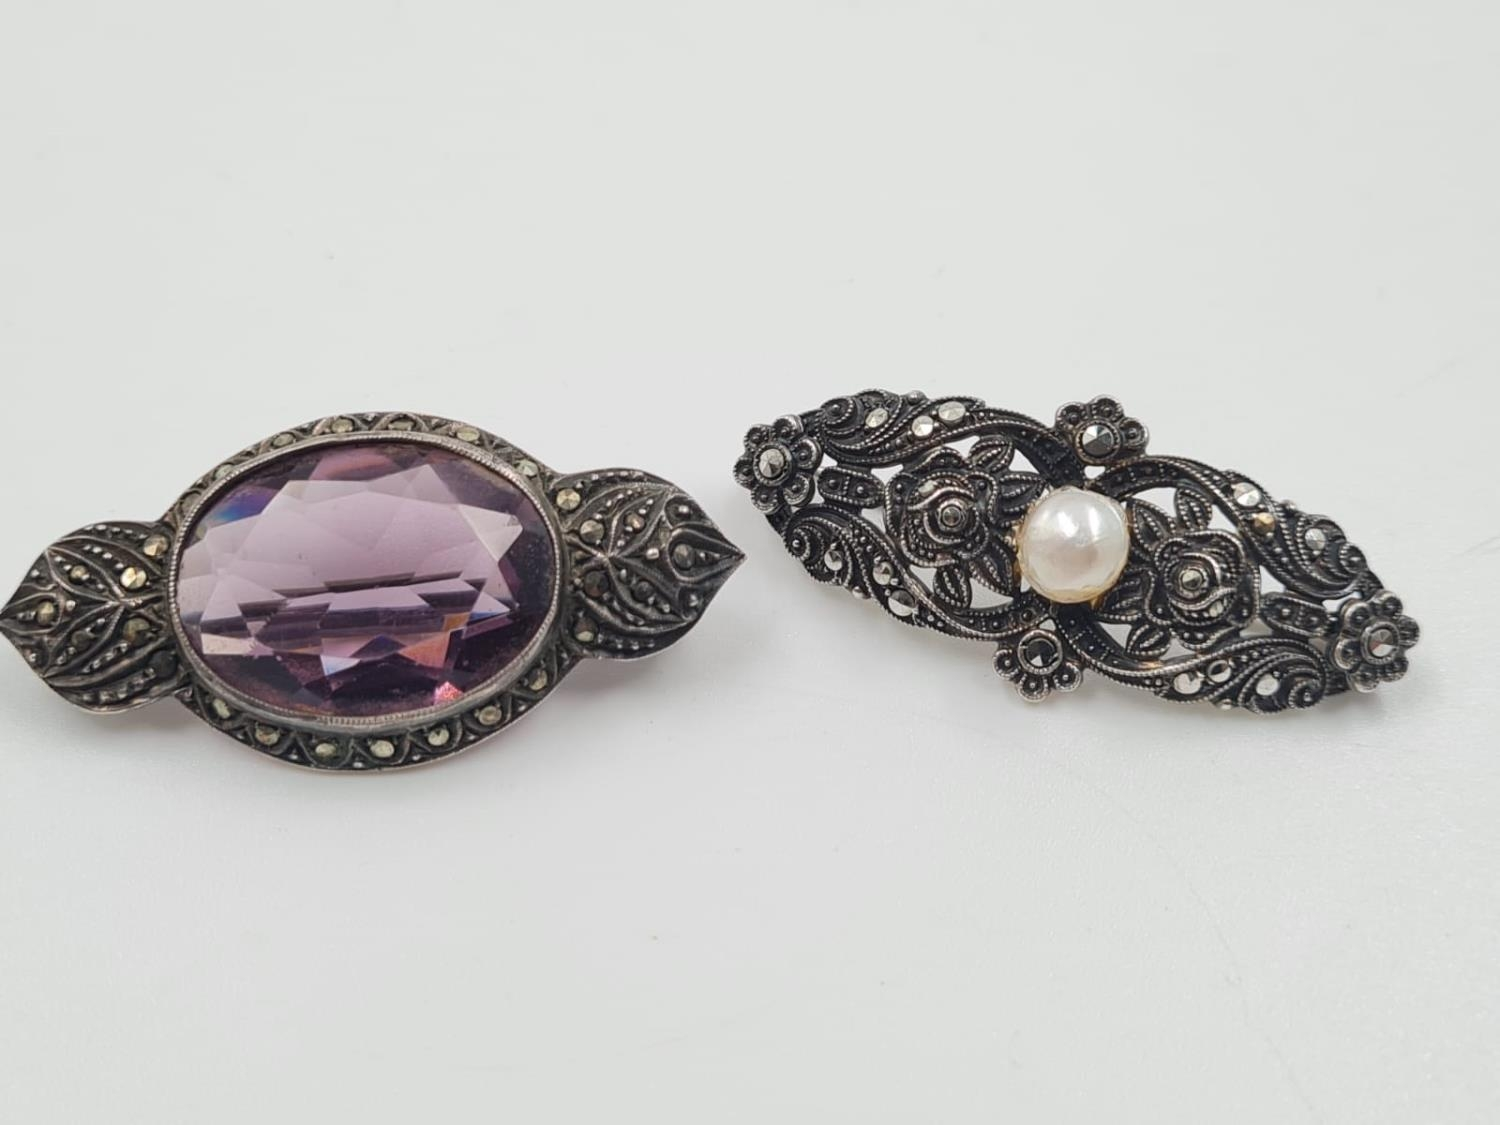 2 Silver Marcasite Brooches. One with a large Hamethyst the other a Pearl. 4cm. 18g total weight.